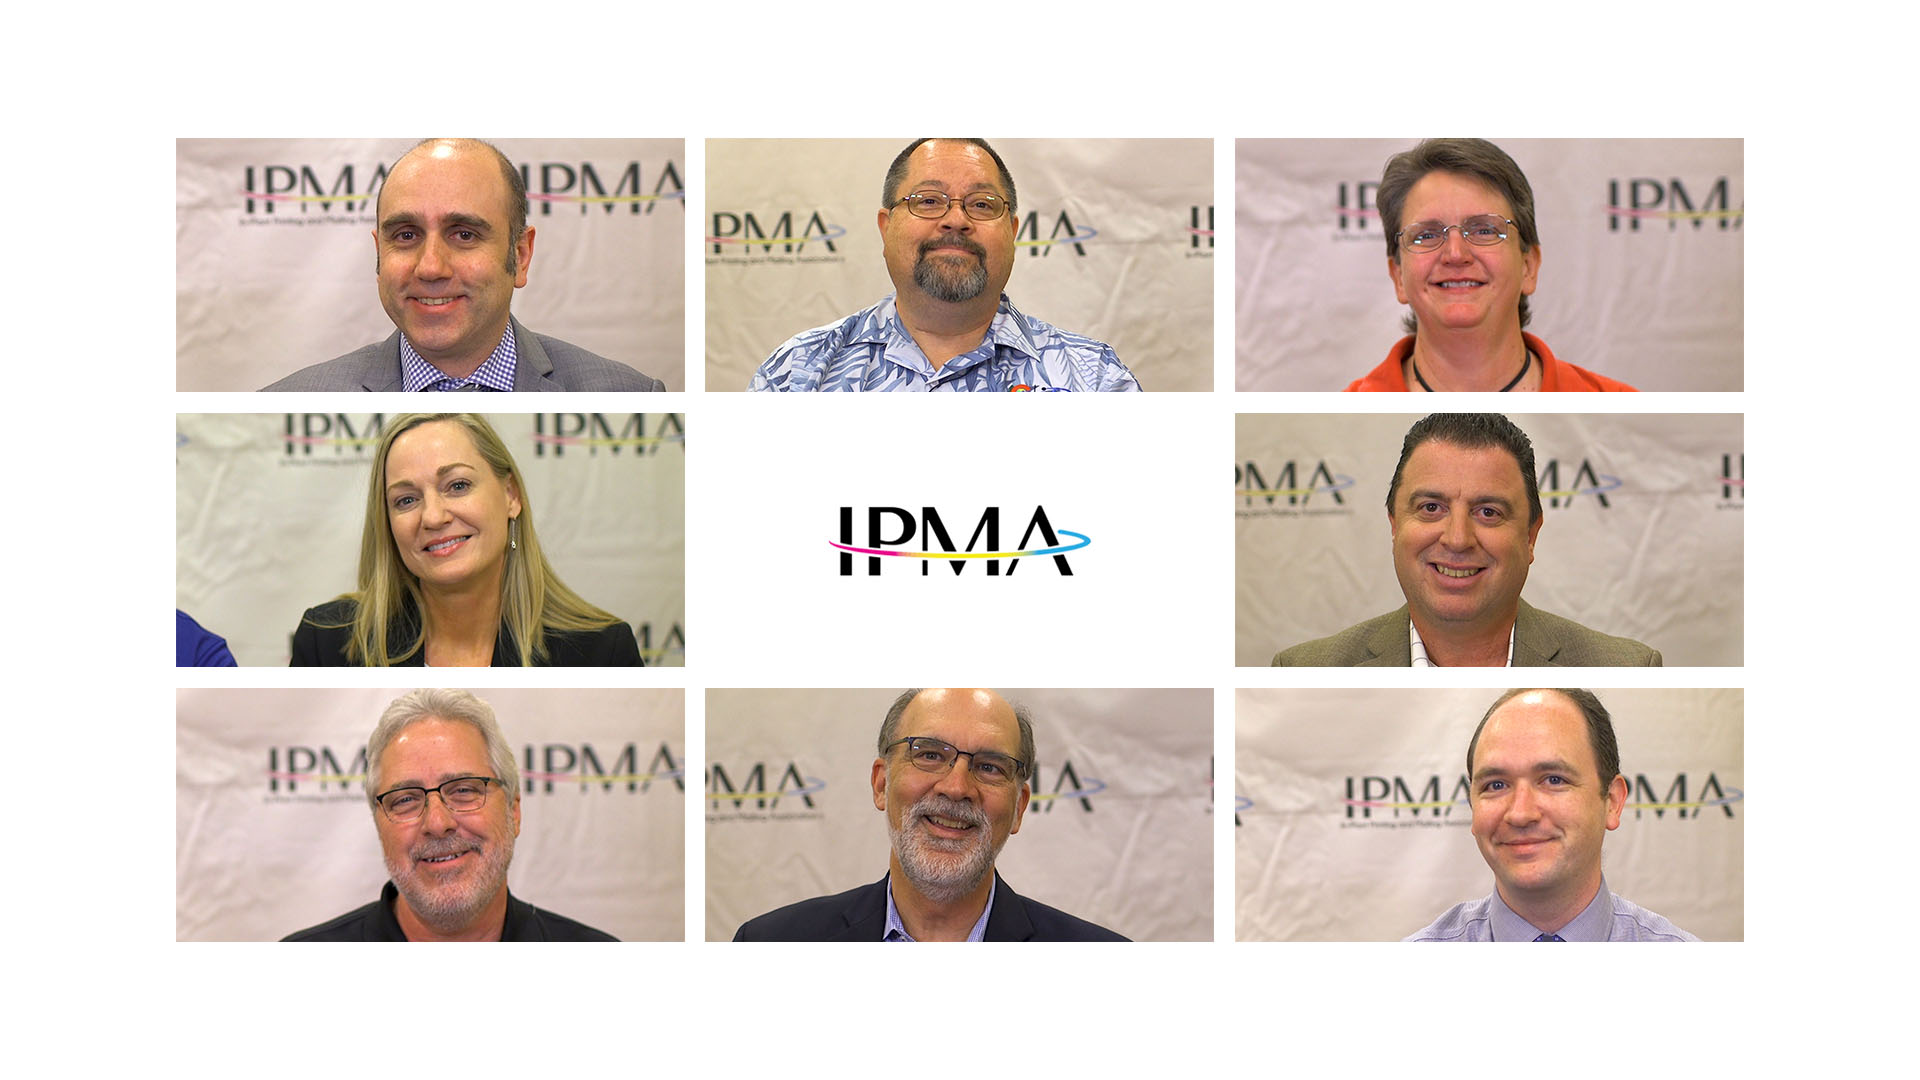 Video preview: WhatTheyThink at IPMA 2019 Conference